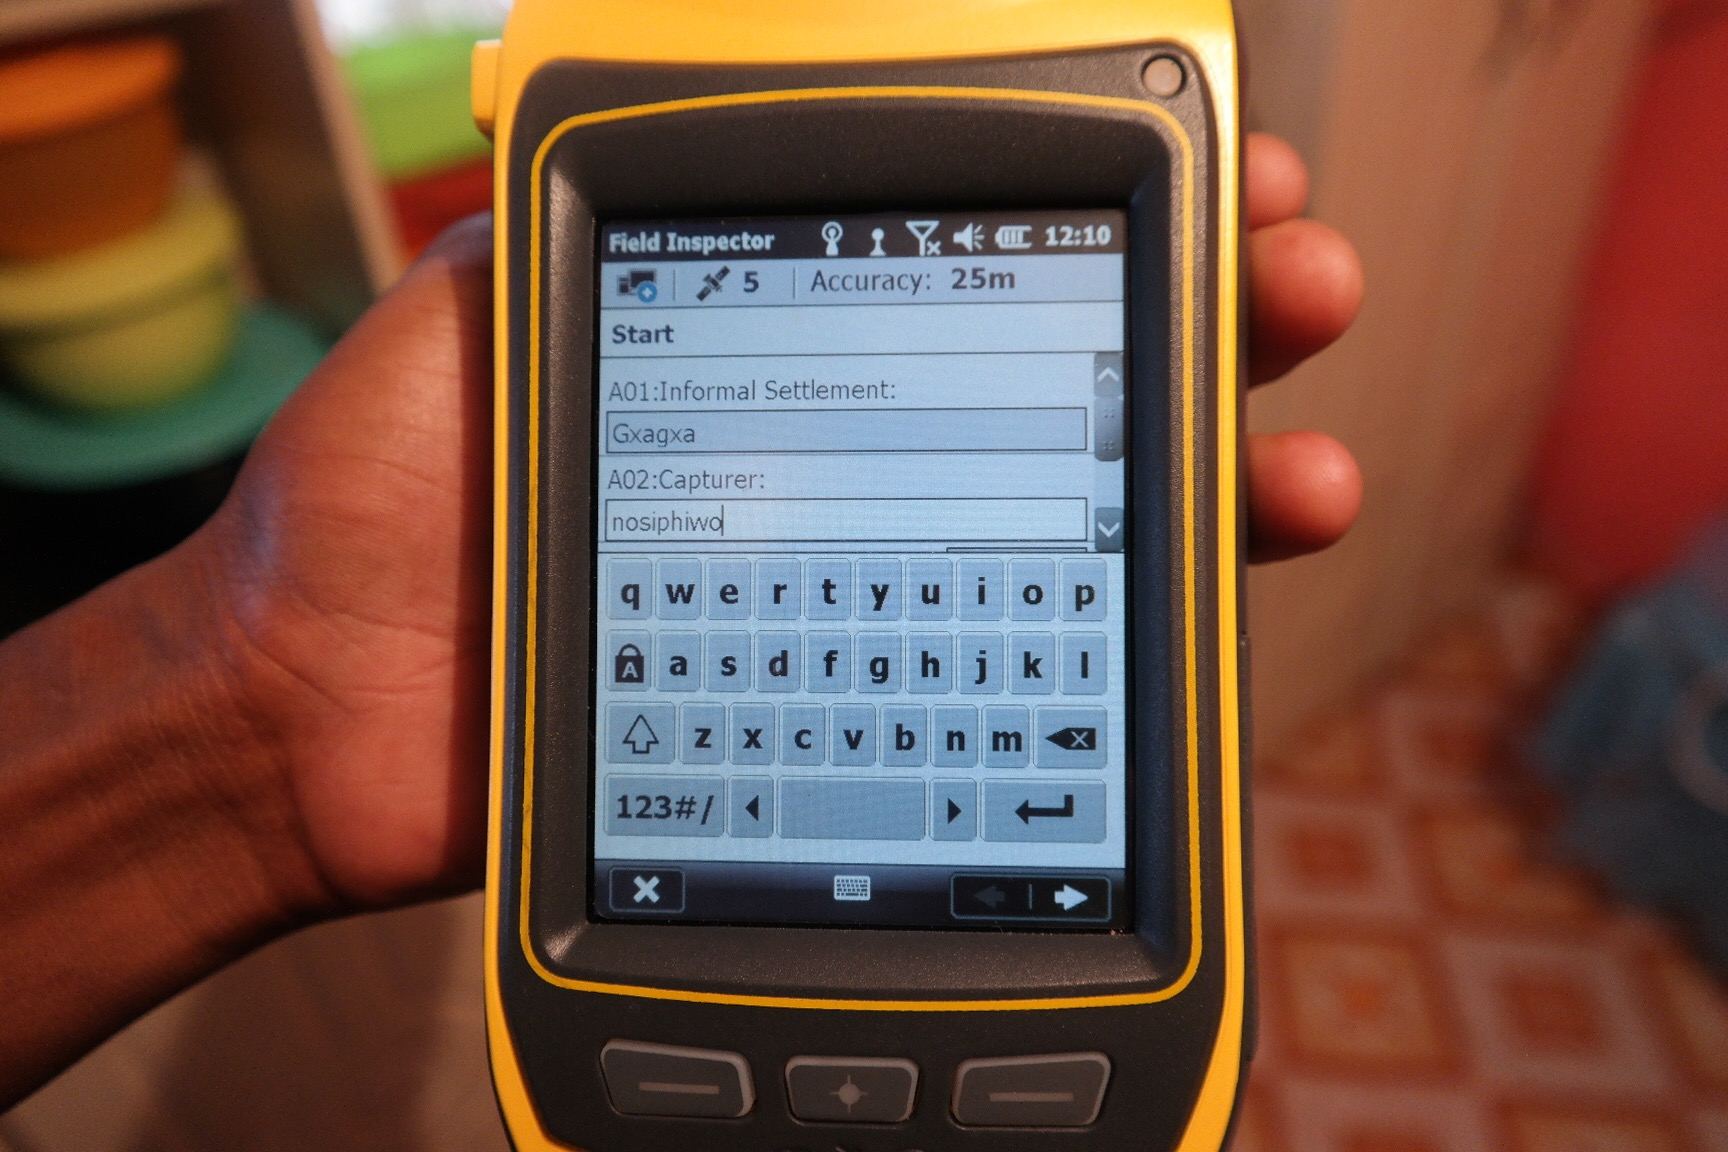 The Trimble is a device used for data capturing during household-level surveying